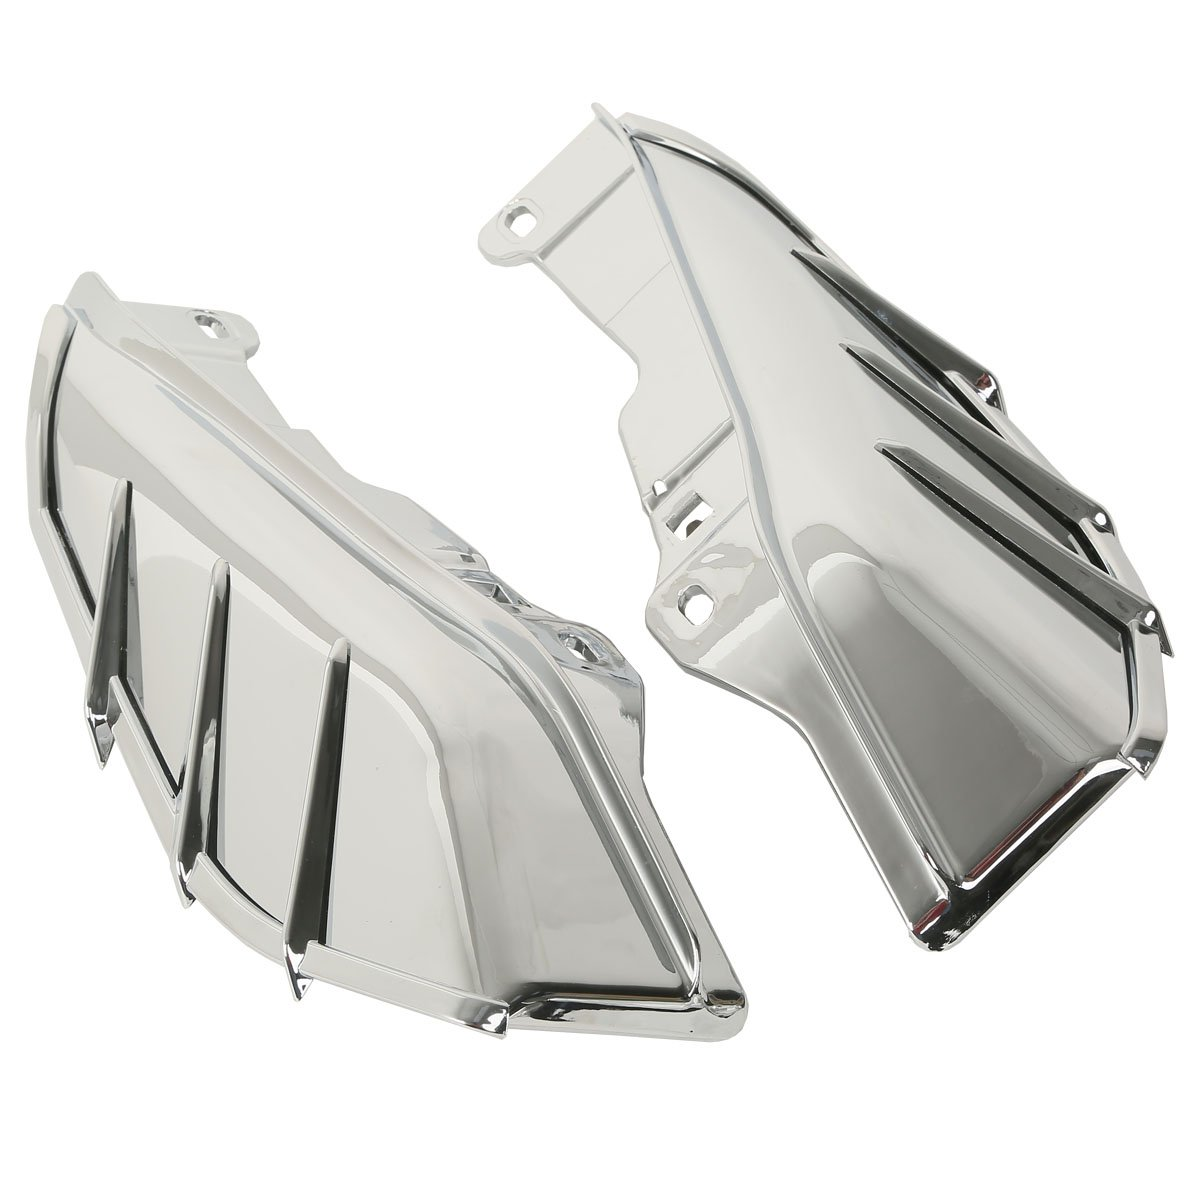 xmt-moto mid-frame Air Deflectors W / TRIM FOR HARLEY TOURING Trikeモデル09 – 17 Motorcycle ブラック XMTXF2906188-01-NEW-01 B0756XSPQJ ブラック